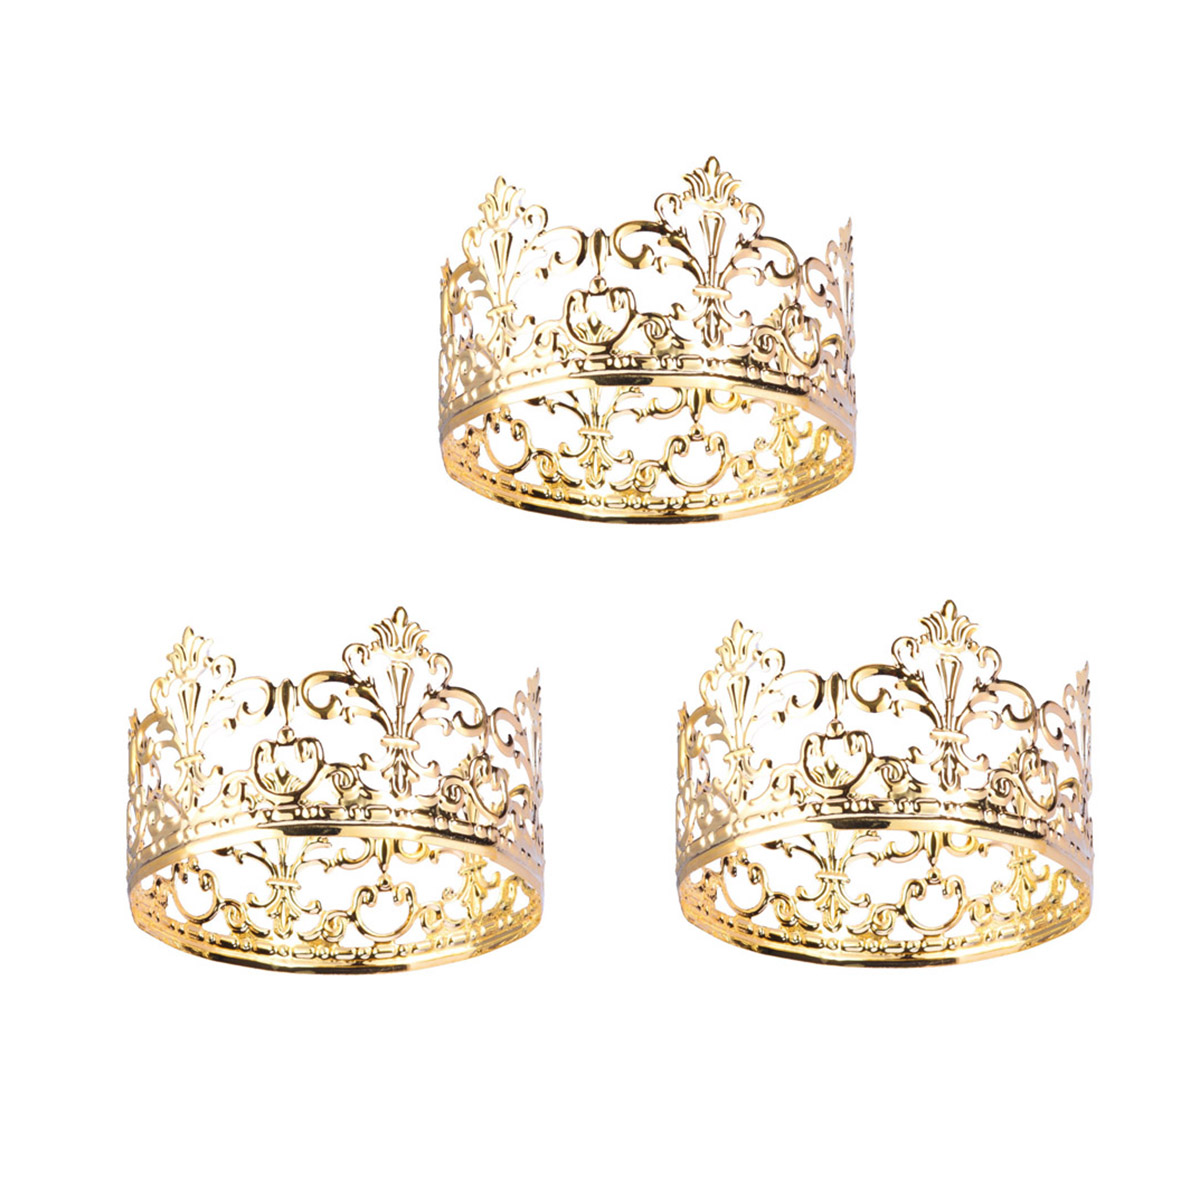 Pack Of 3 Elegant Beautiful Royal Fashion Luxury Crown Cake Topper Cake Decoration For Prince Queen King Princess Themed Parties